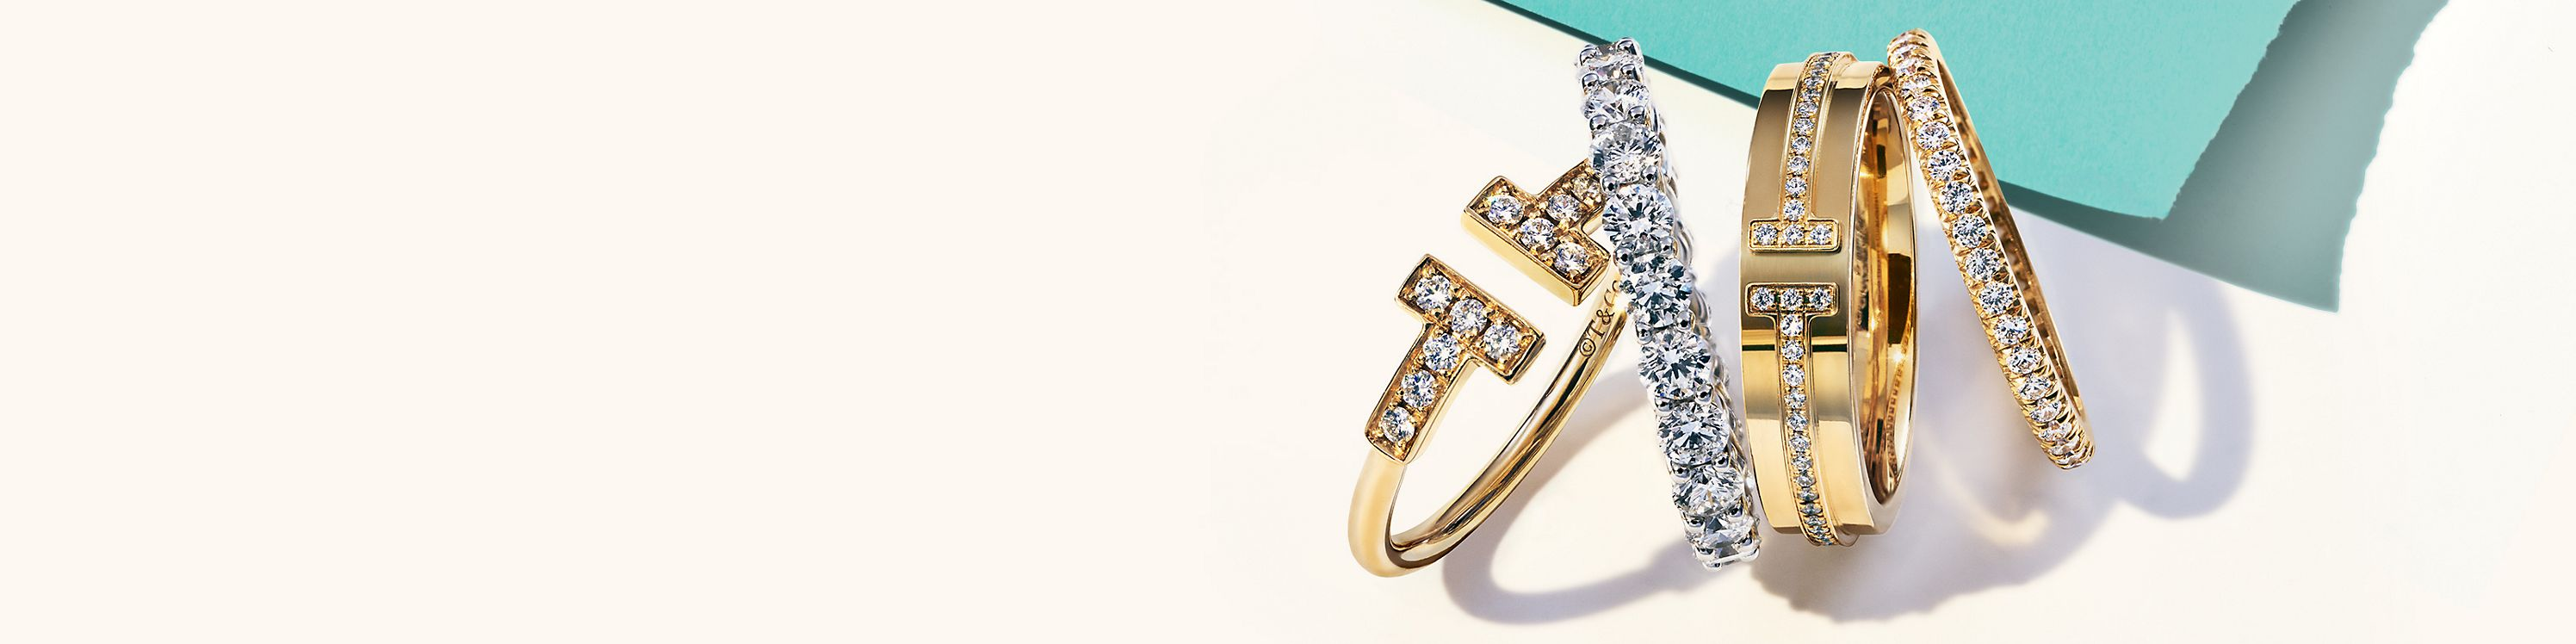 636a79a68 Rings For Women | Crafted With Excellence | Tiffany & Co.